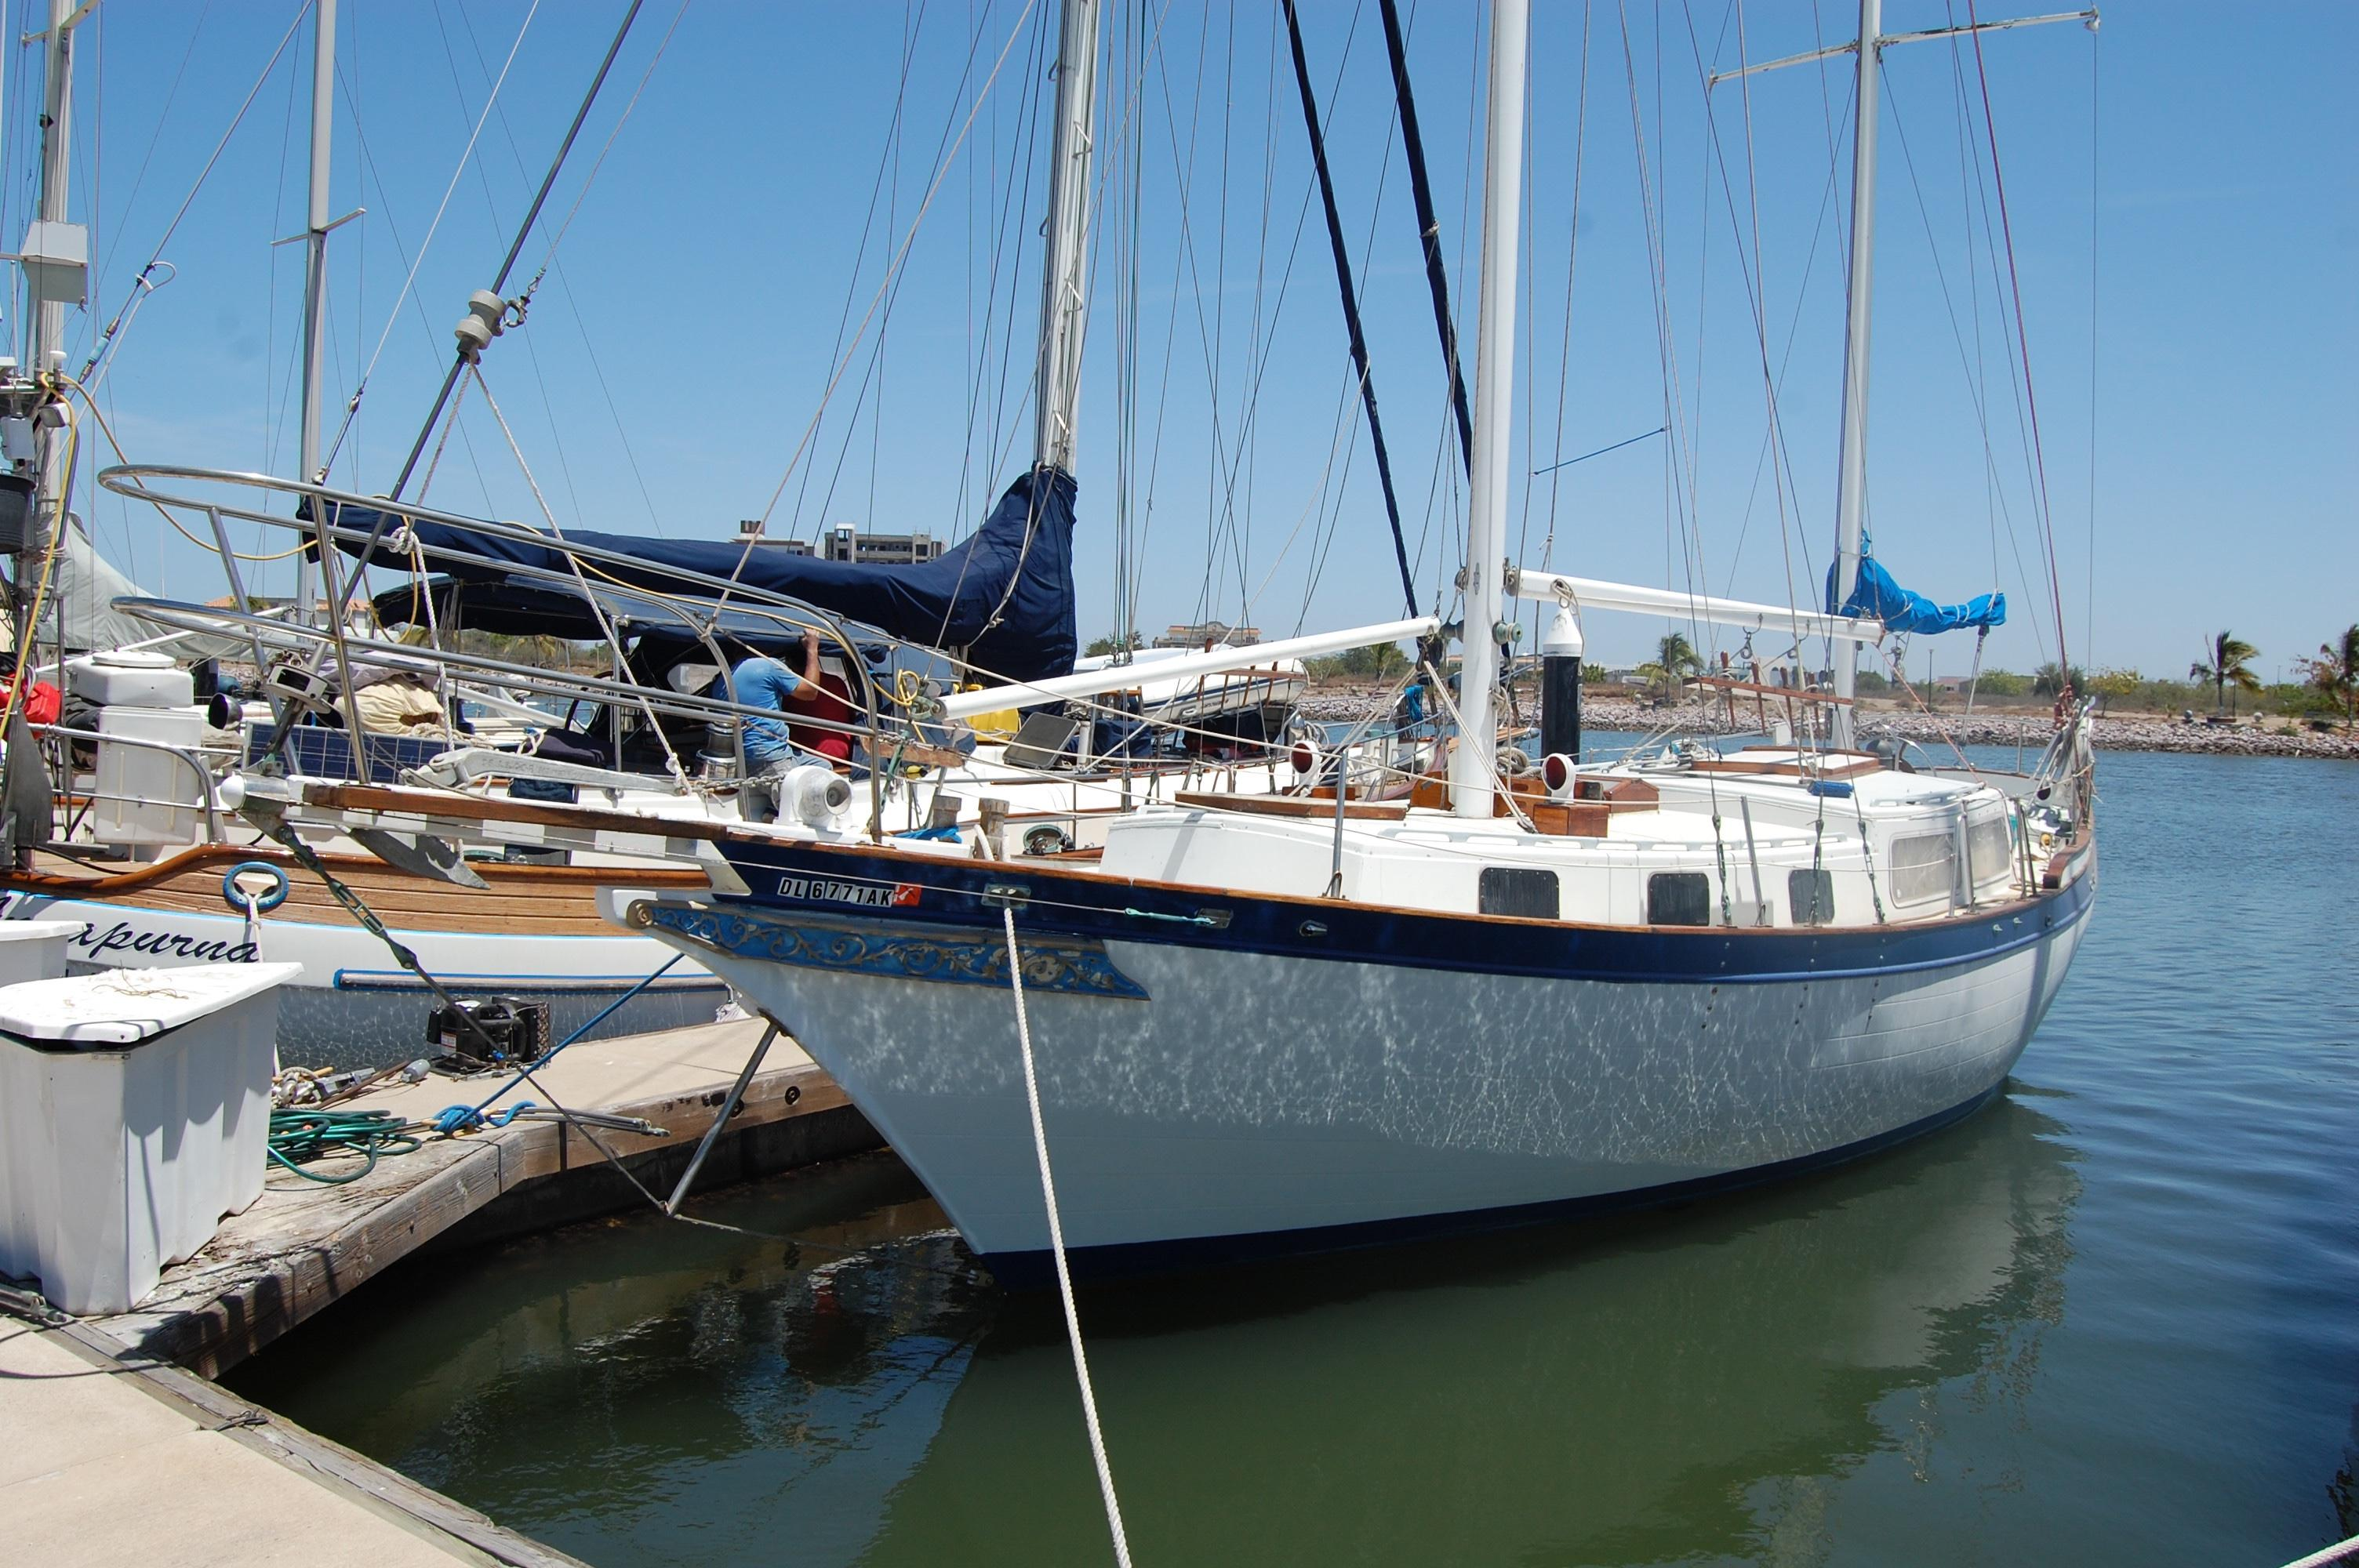 38' Down East +Boat for sale!